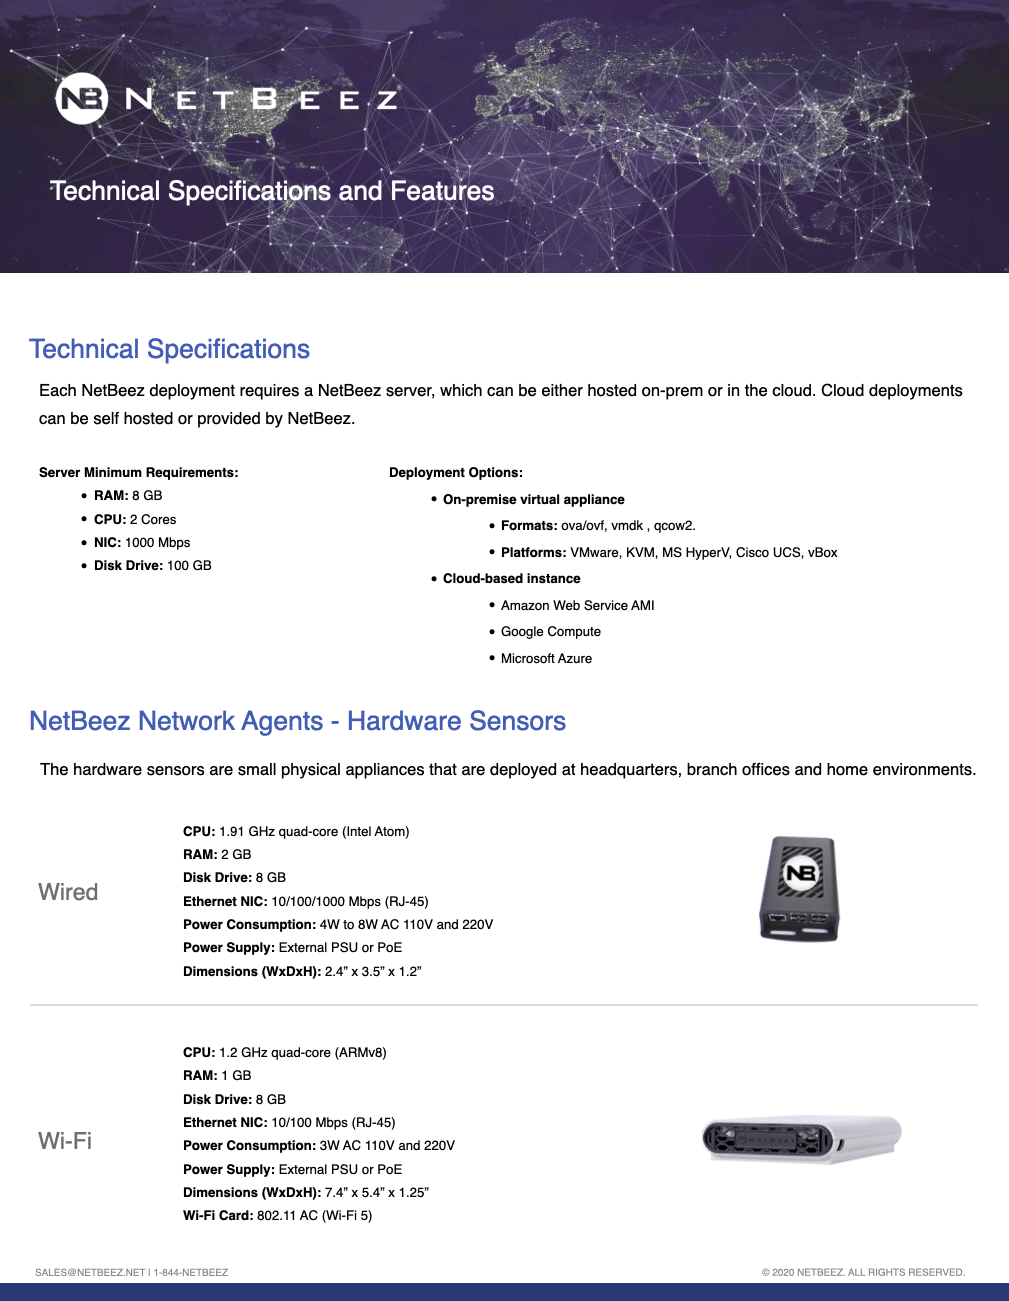 NetBeez Technical Specifications and Features